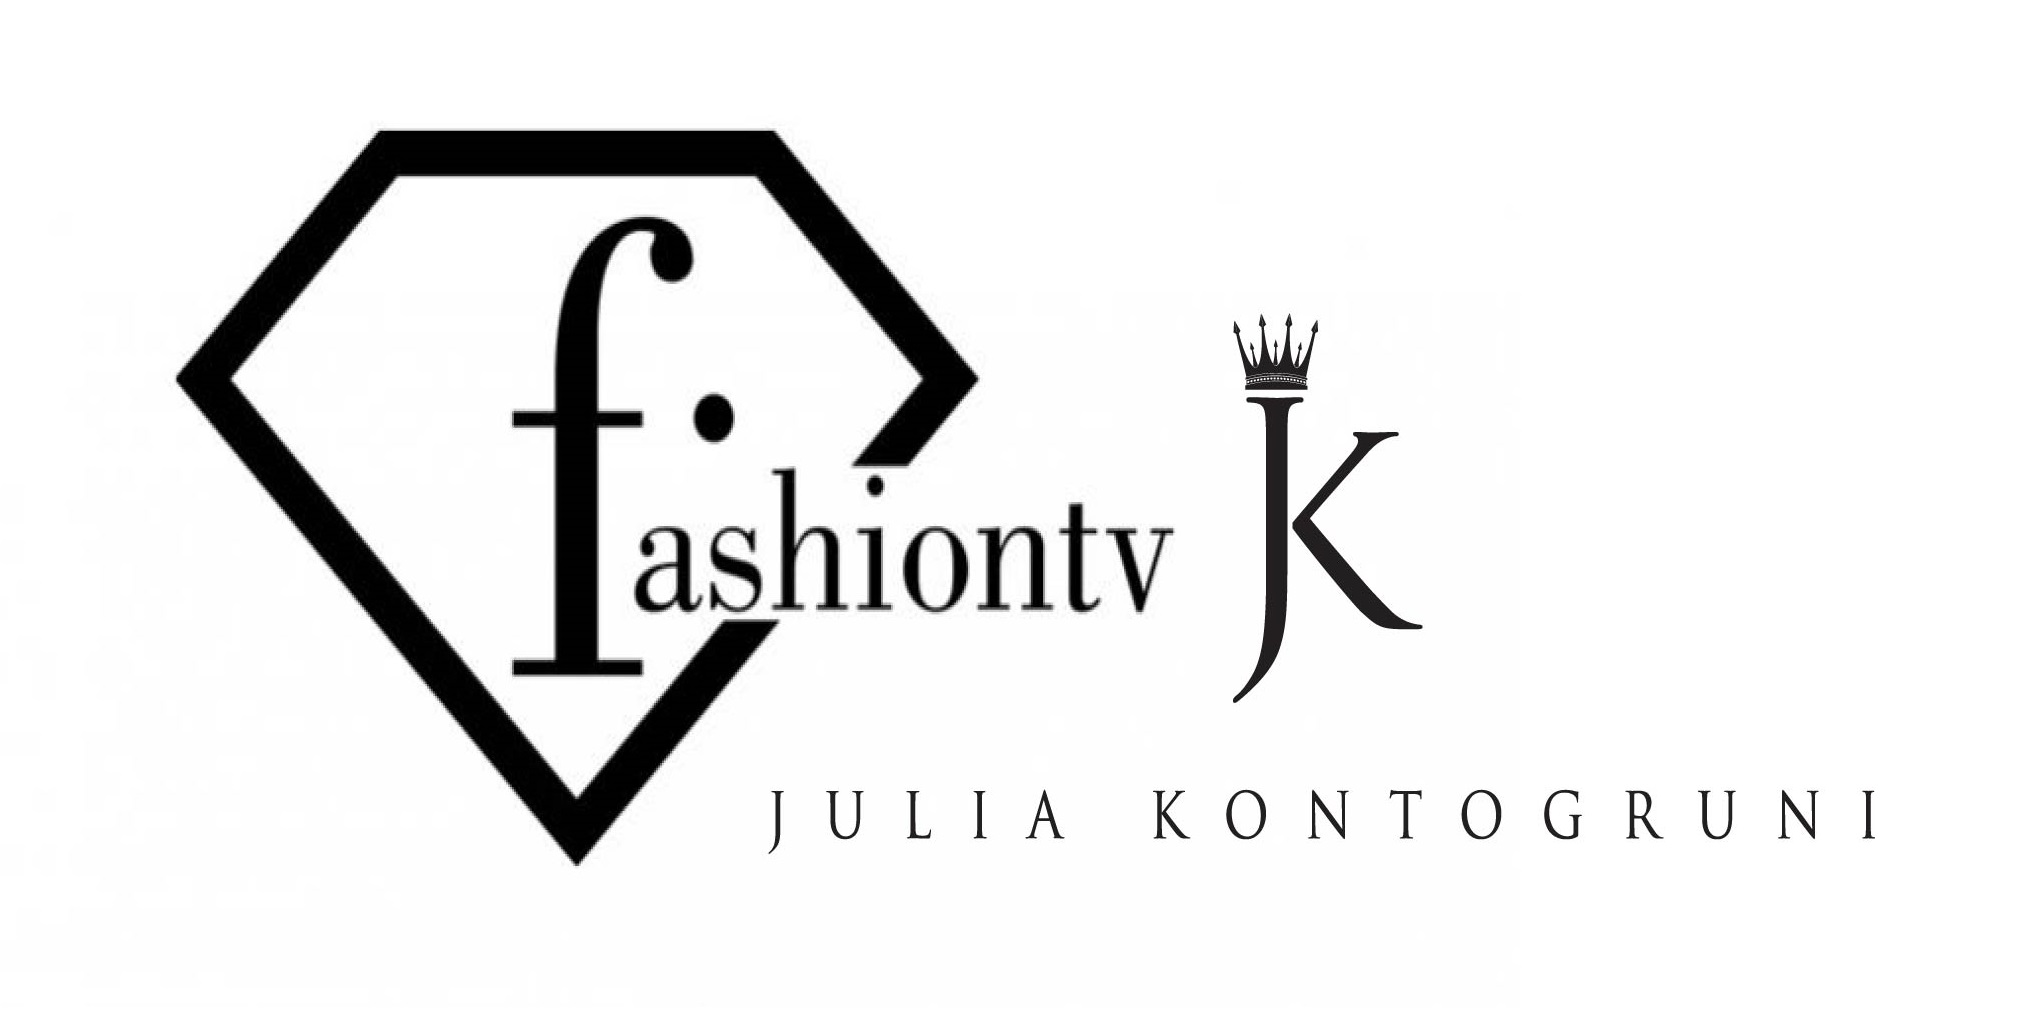 luxury-wedding-dresses-new-york-julia-kontogruni-fashiontv Julia Kontogruni Reposts # Fashion TV # See it First # - Julia Kontogruni